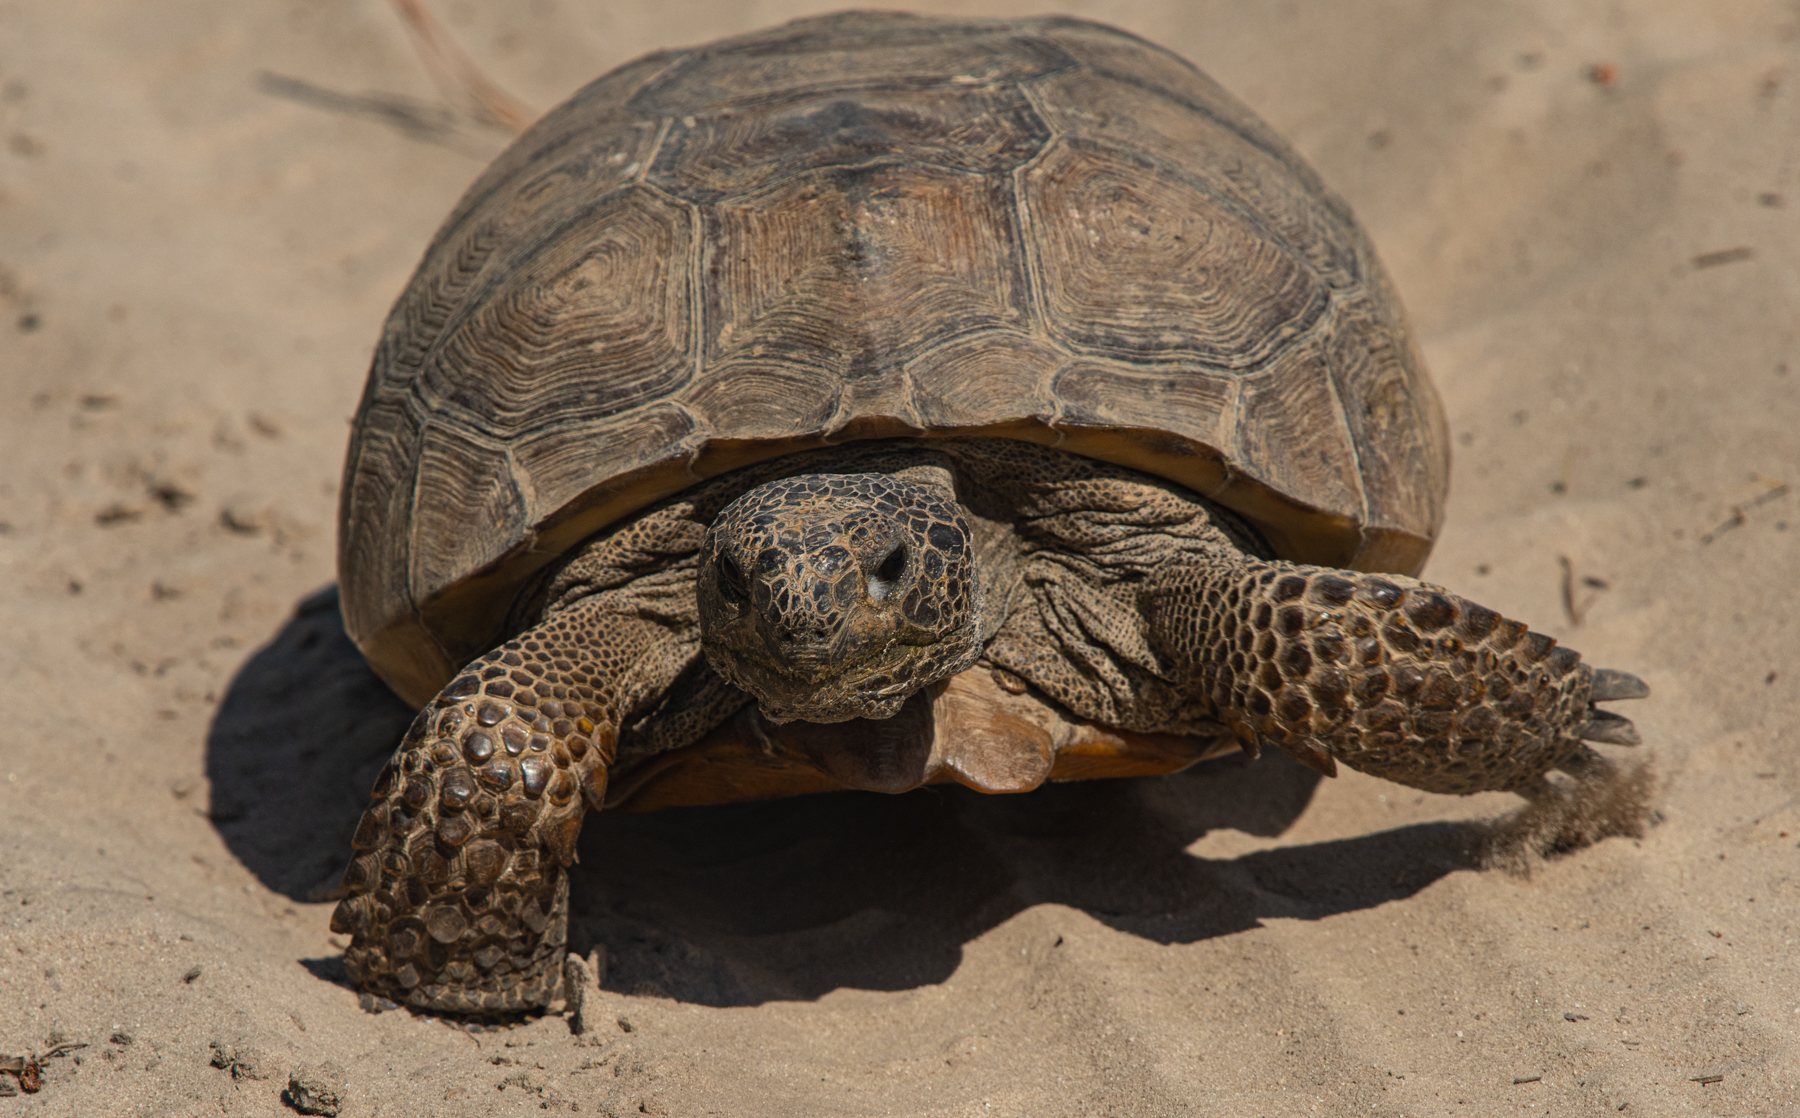 The tortoise population of 150 individuals will continue to expand under OSI's and SCDNR's stewardship, enhancing a critical stronghold for these charismatic, docile, ancient reptiles.